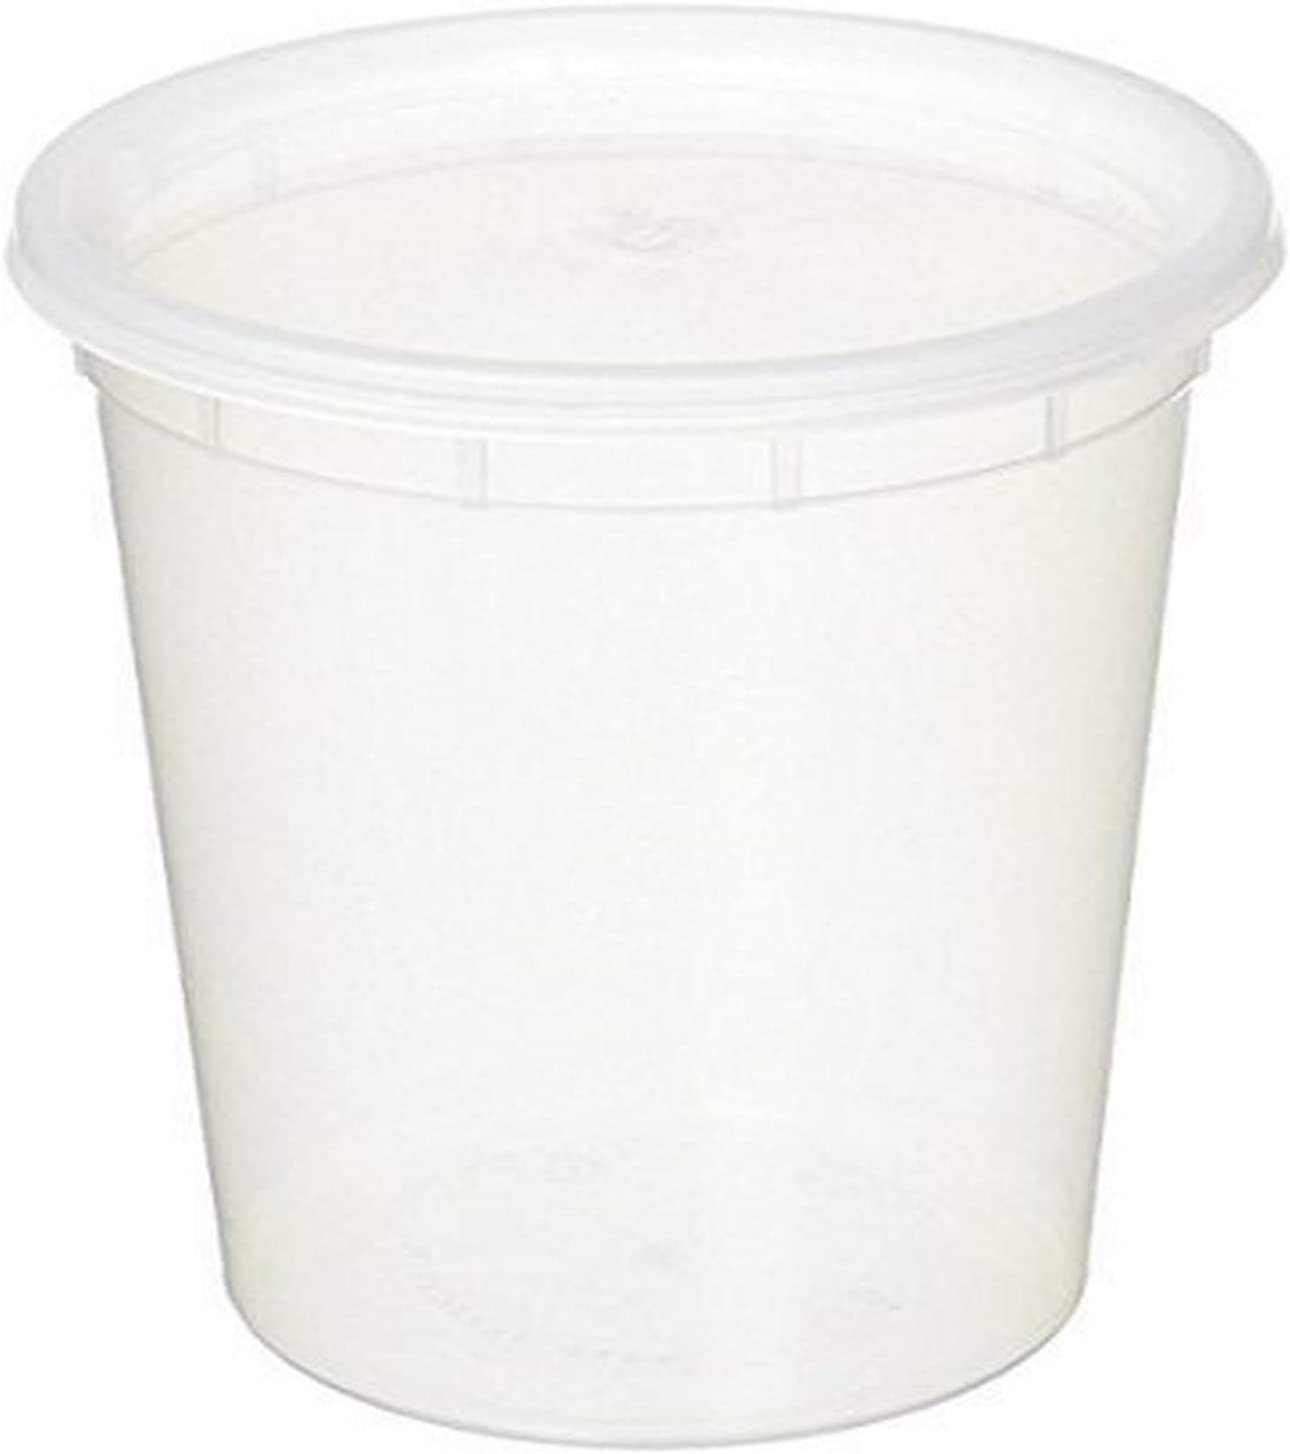 YW Deli Food Container, 32 oz, Clear